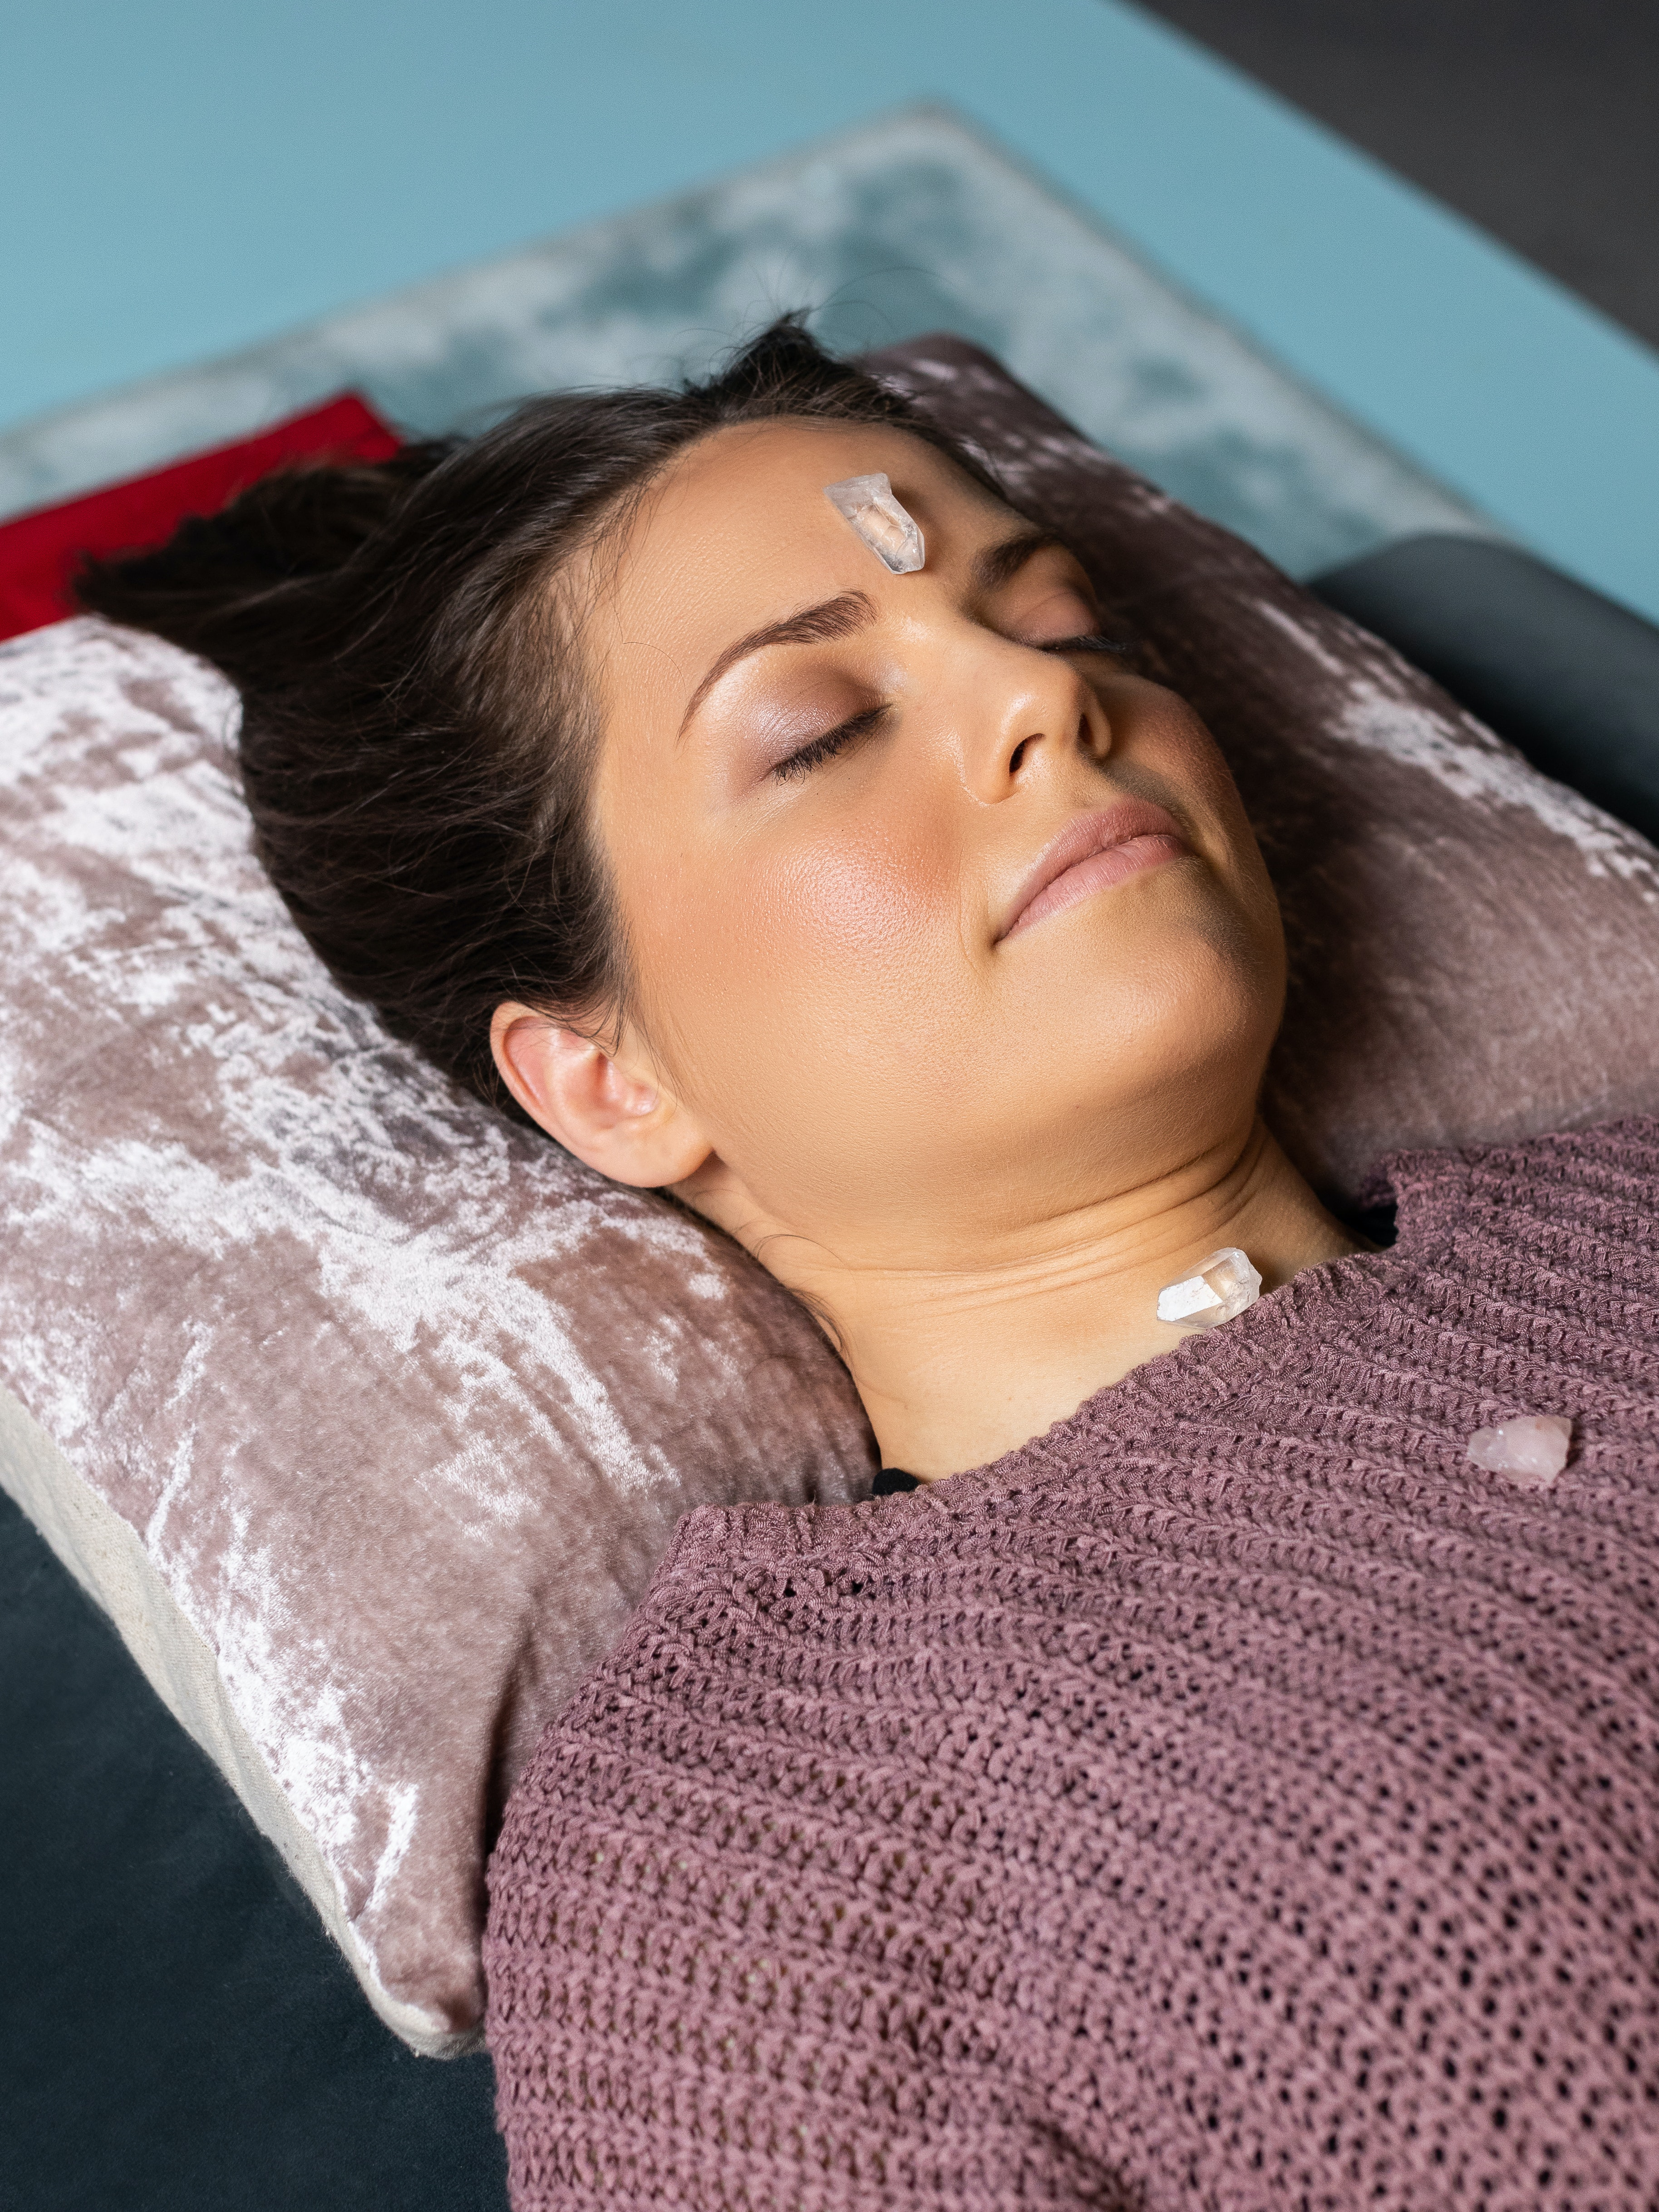 What happens during Reiki